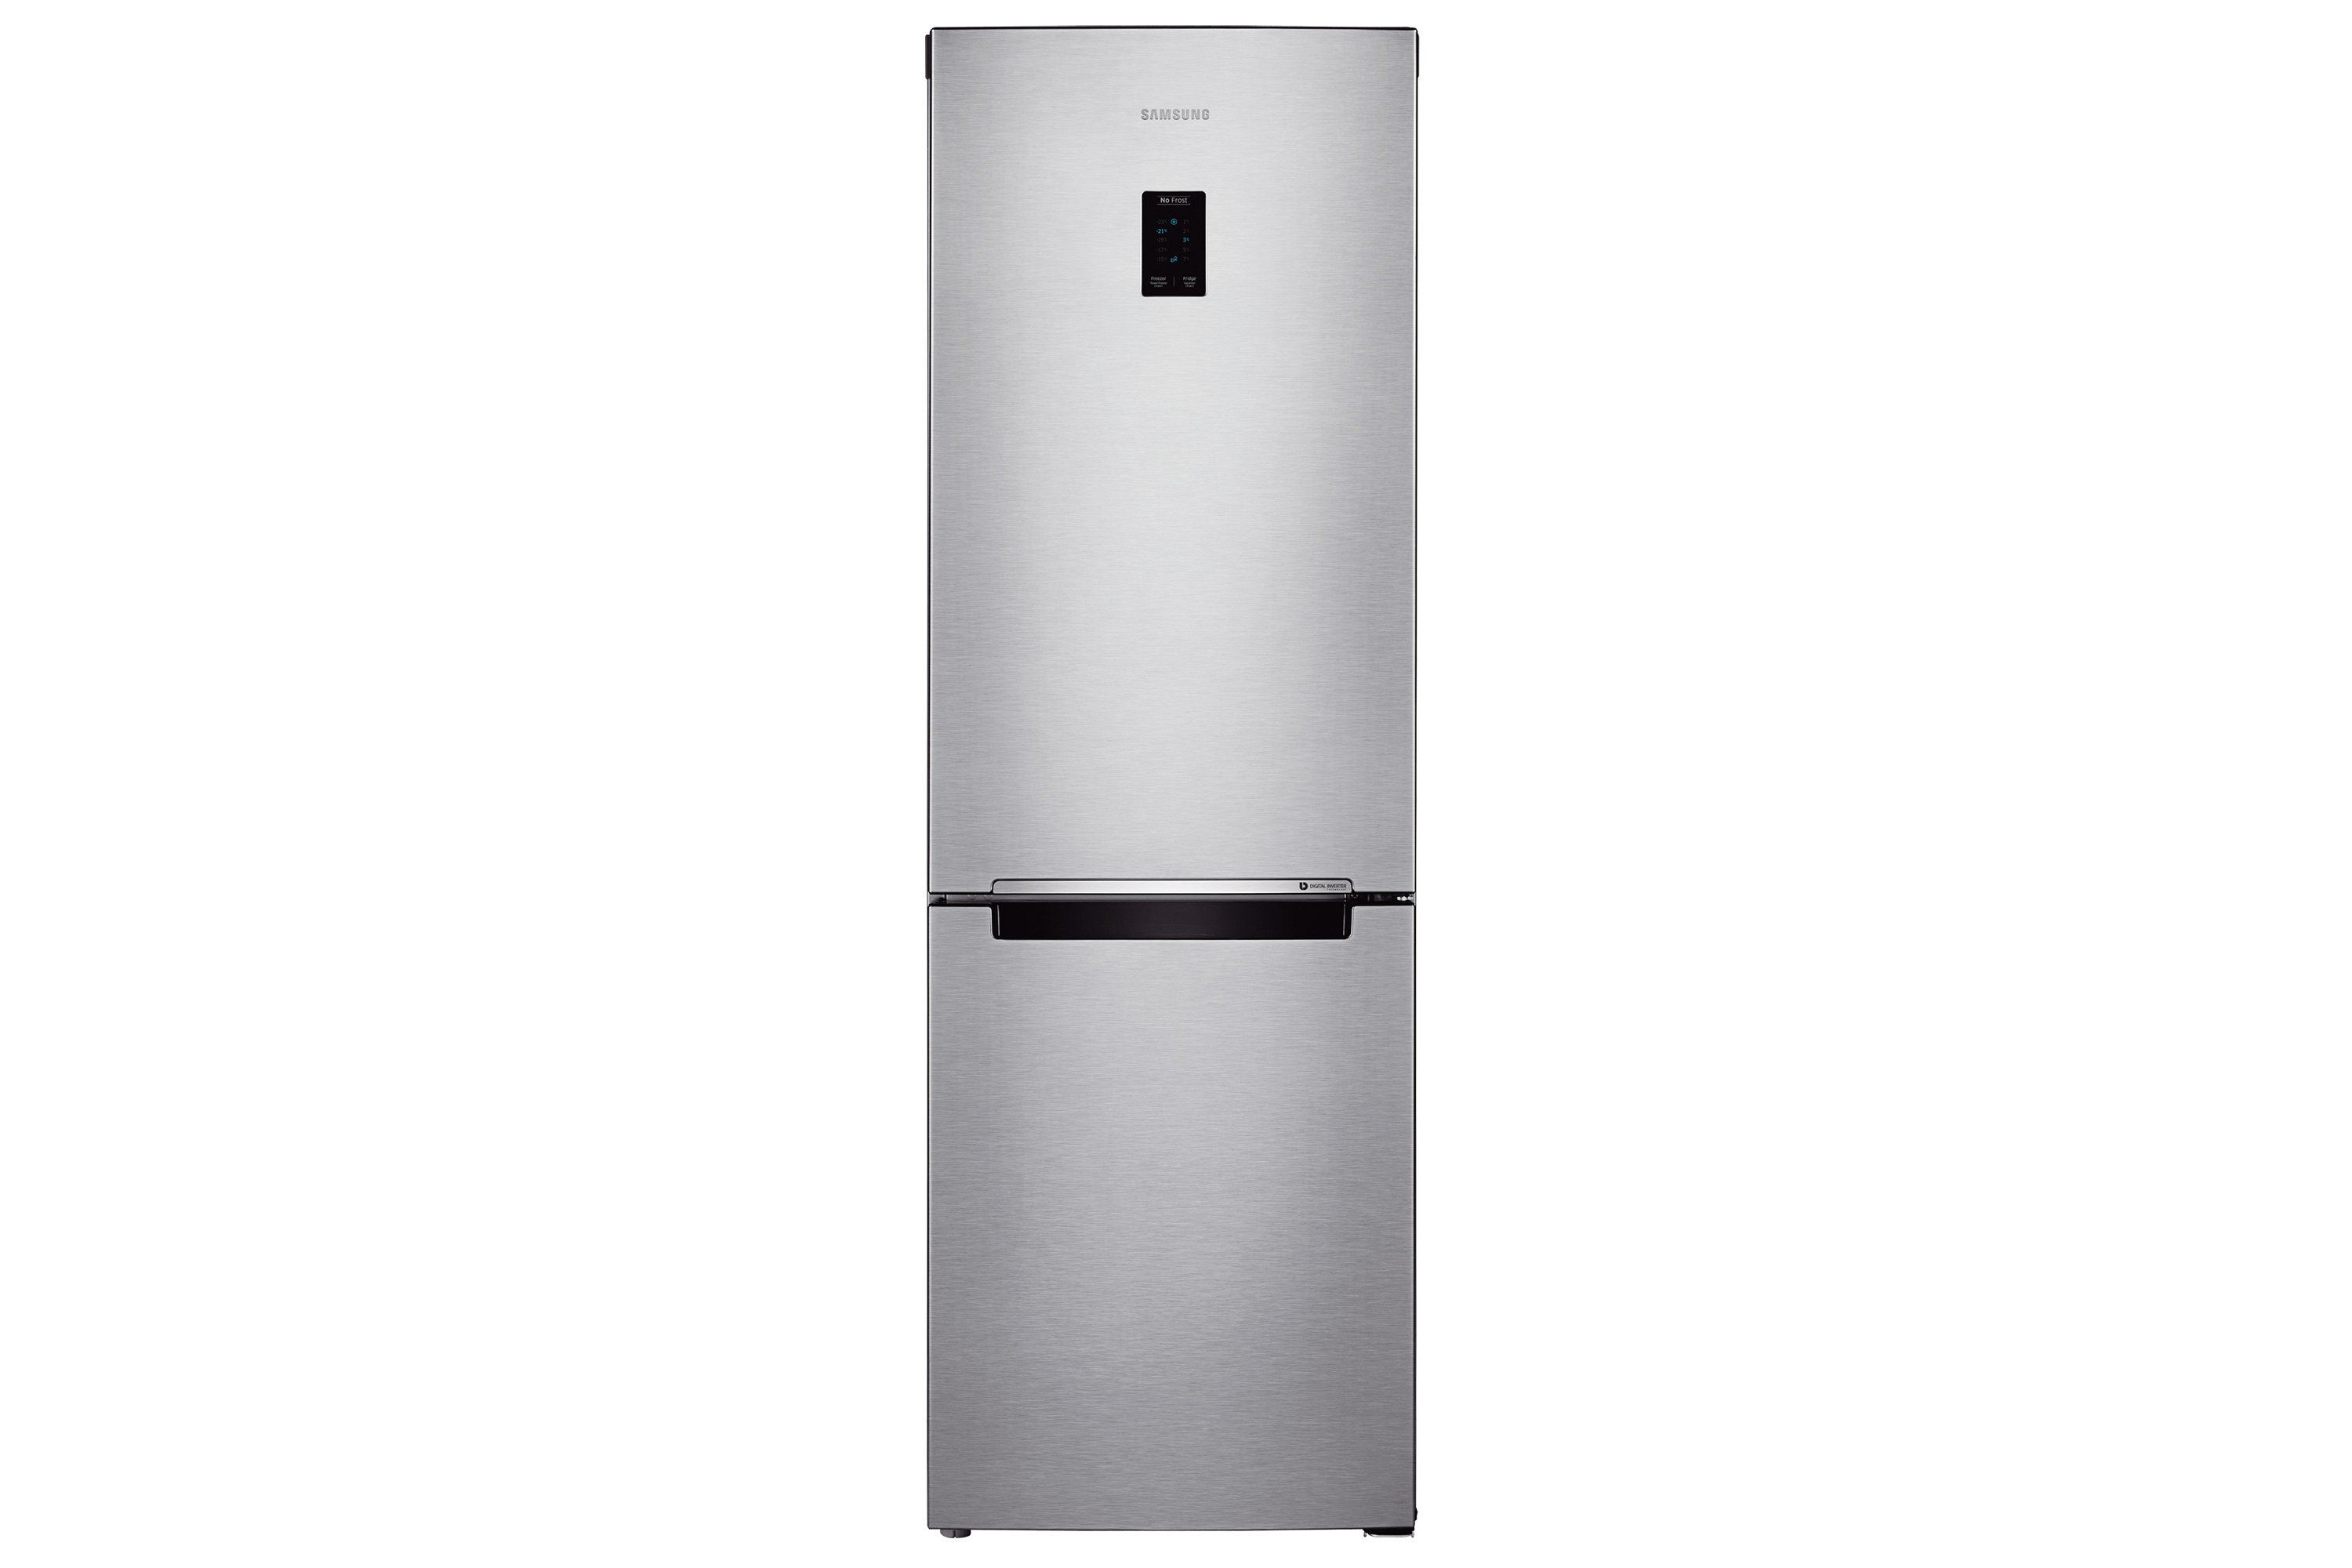 RB33J3200SA/SH 2 door Refrigerator 328L Metal Graphite